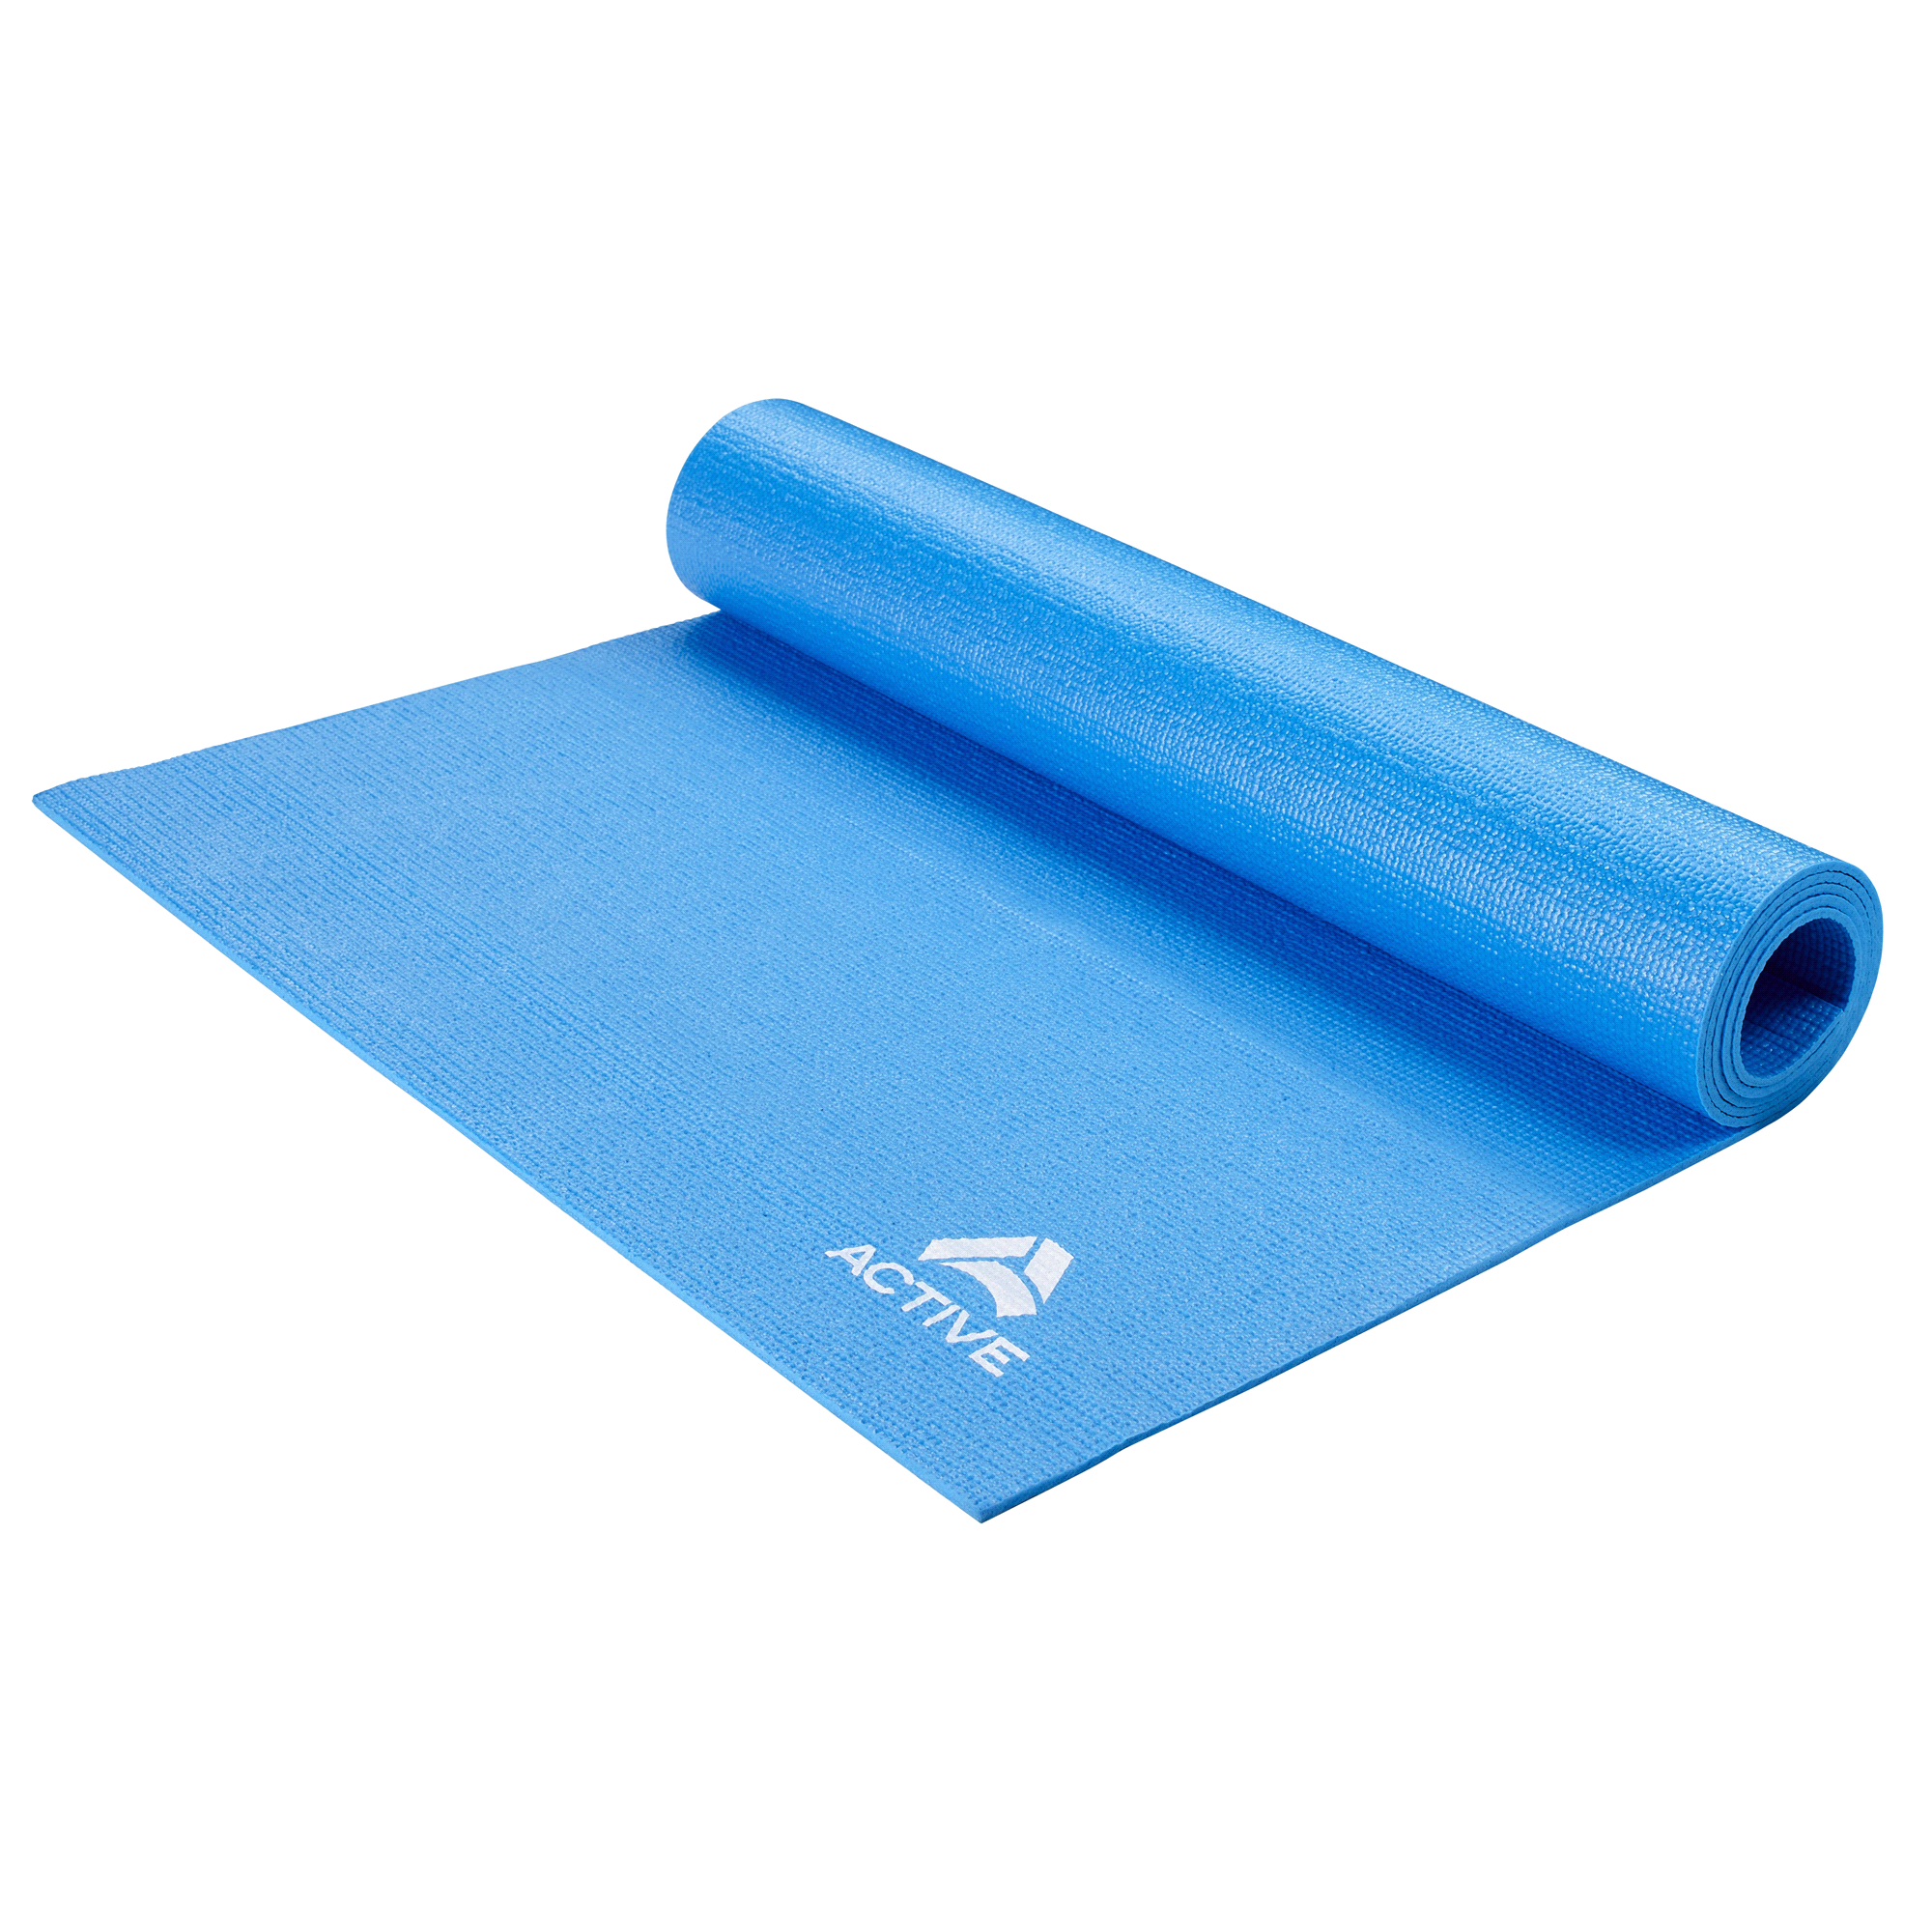 mats waterproof foam mat product anti memory pilates durable high eco fitness cute store slip yoga density exercise gym friendly pad nbr training